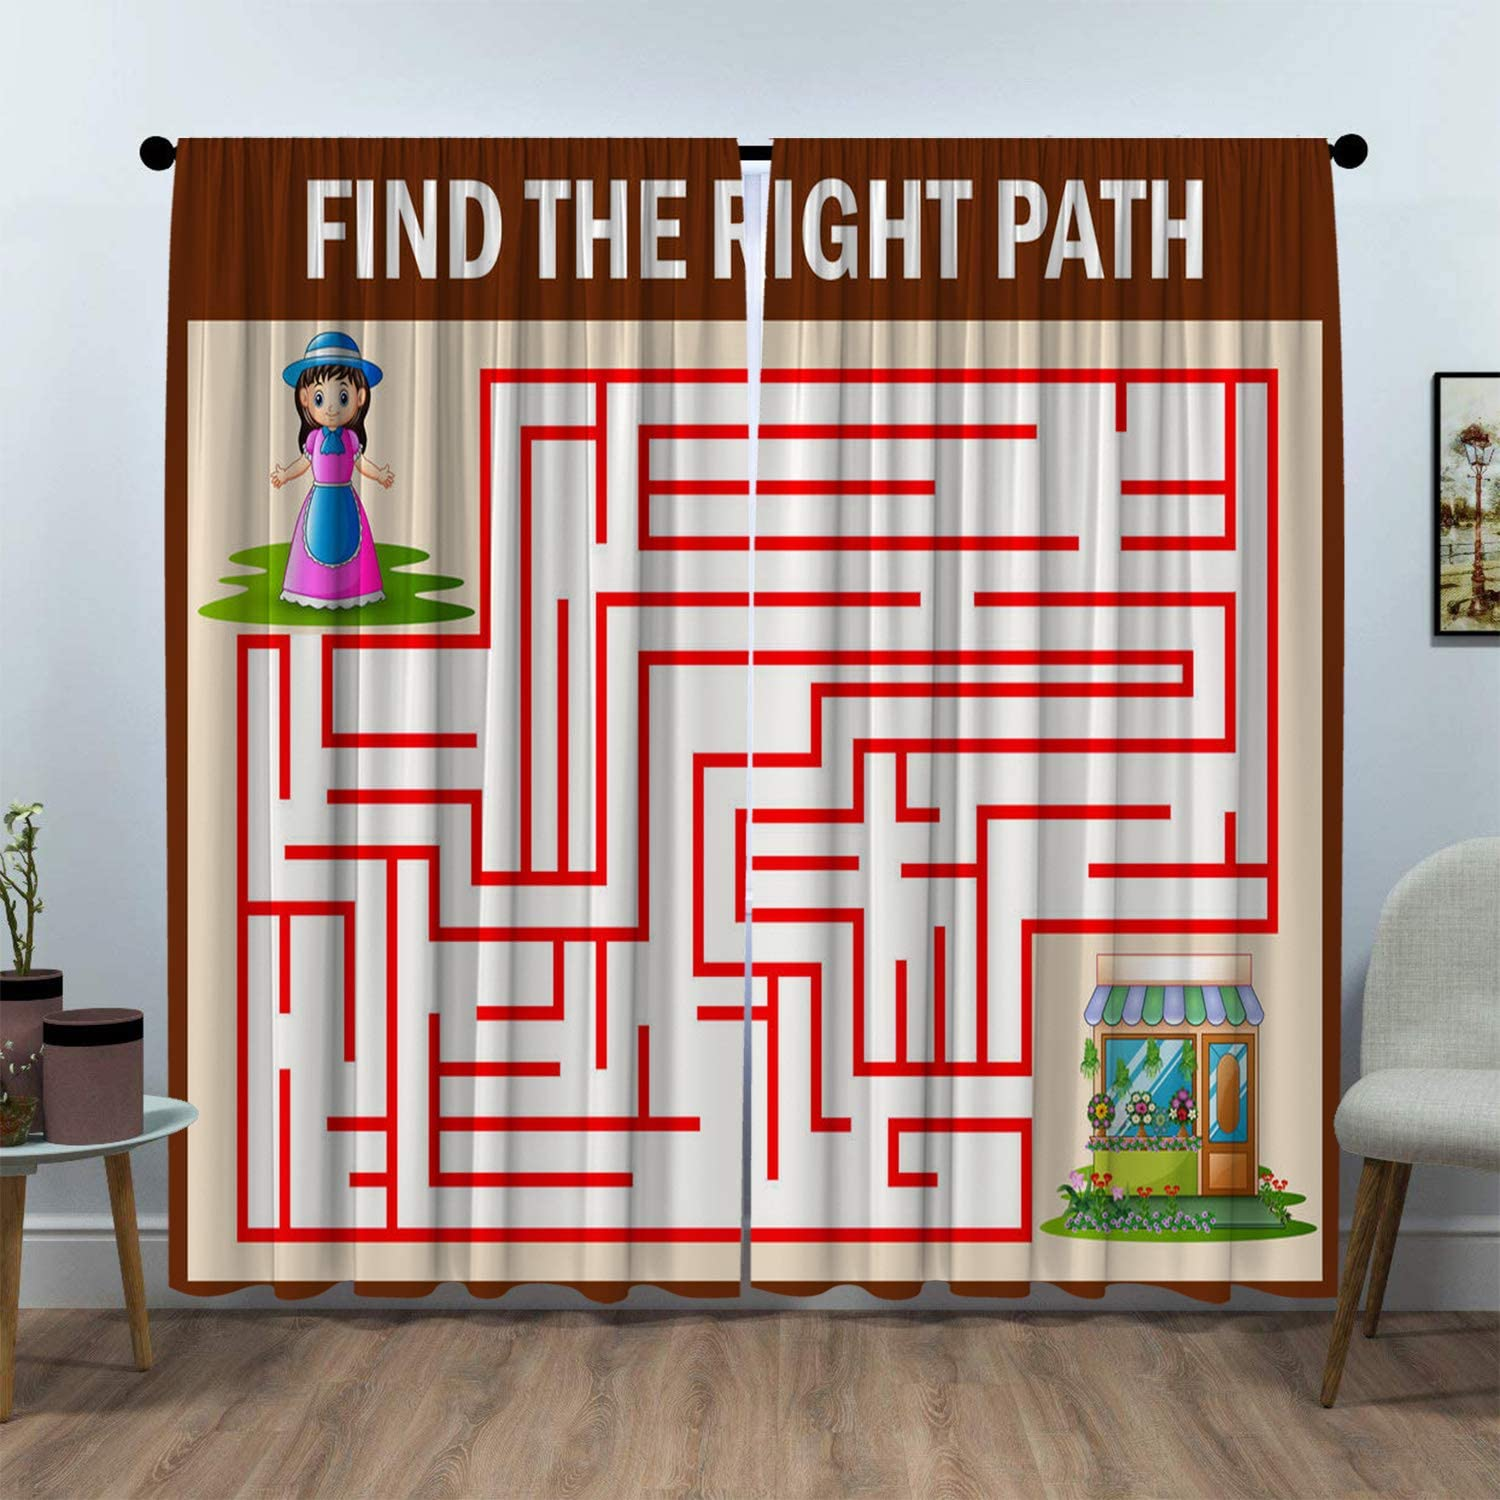 SeptSonne Kids Room Window Curtain Panels Drapes Maze Game of Find Girls Their Way to The Flower Shop Kids Room Darkening Curtains Artwork Customized Curtains 52